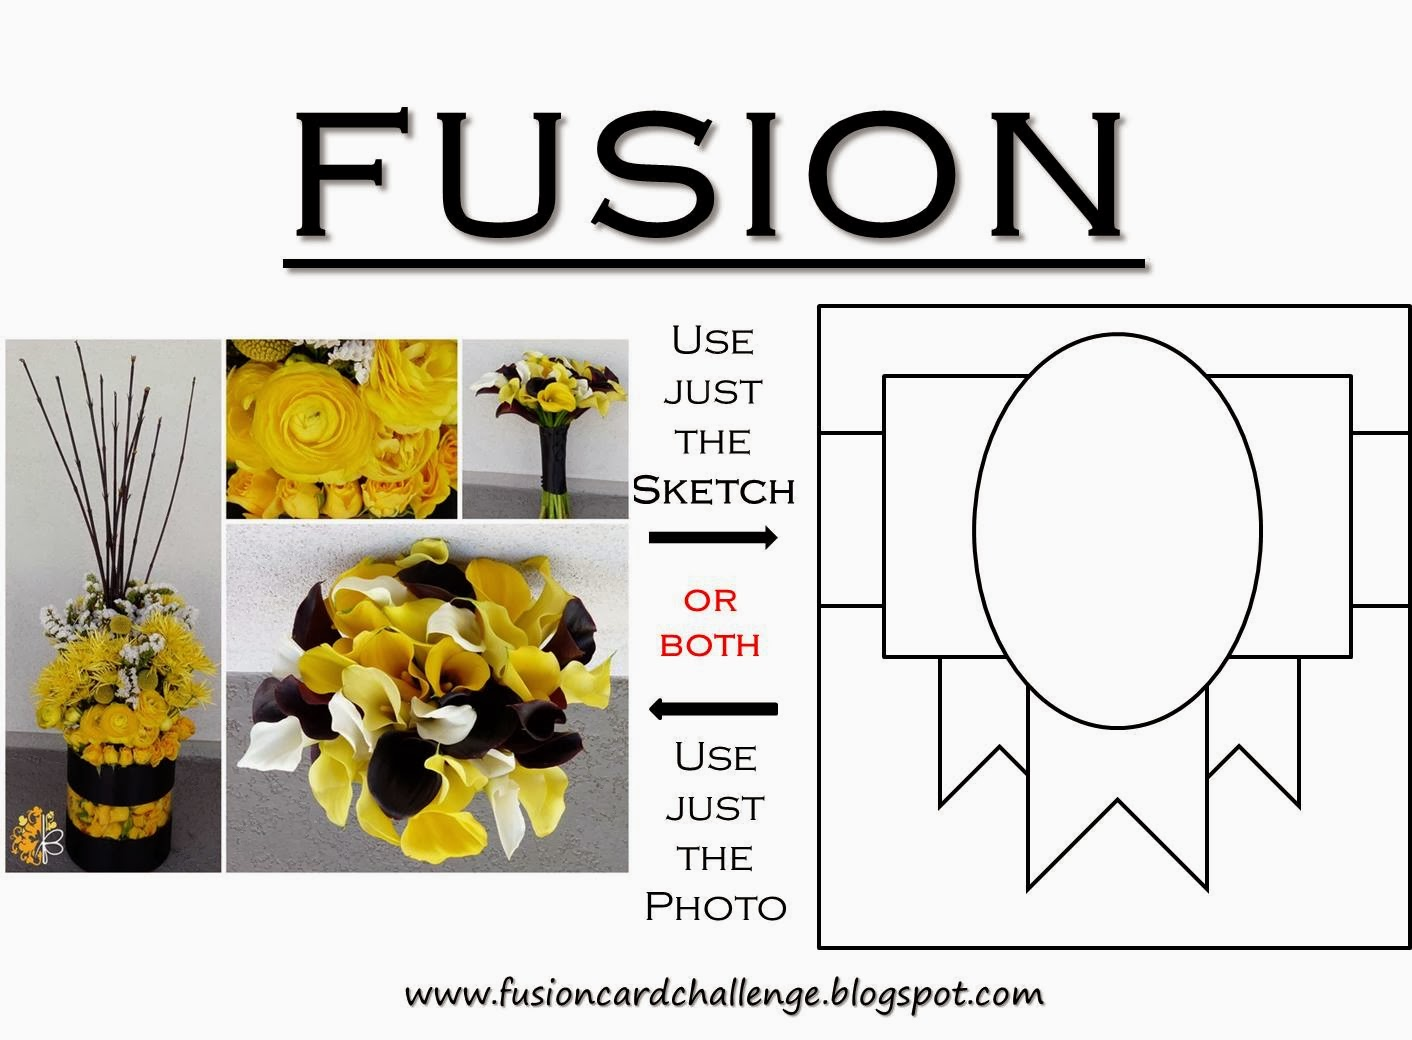 http://fusioncardchallenge.blogspot.com/2014/05/fusion-challenge-black-white-yellow-or.html